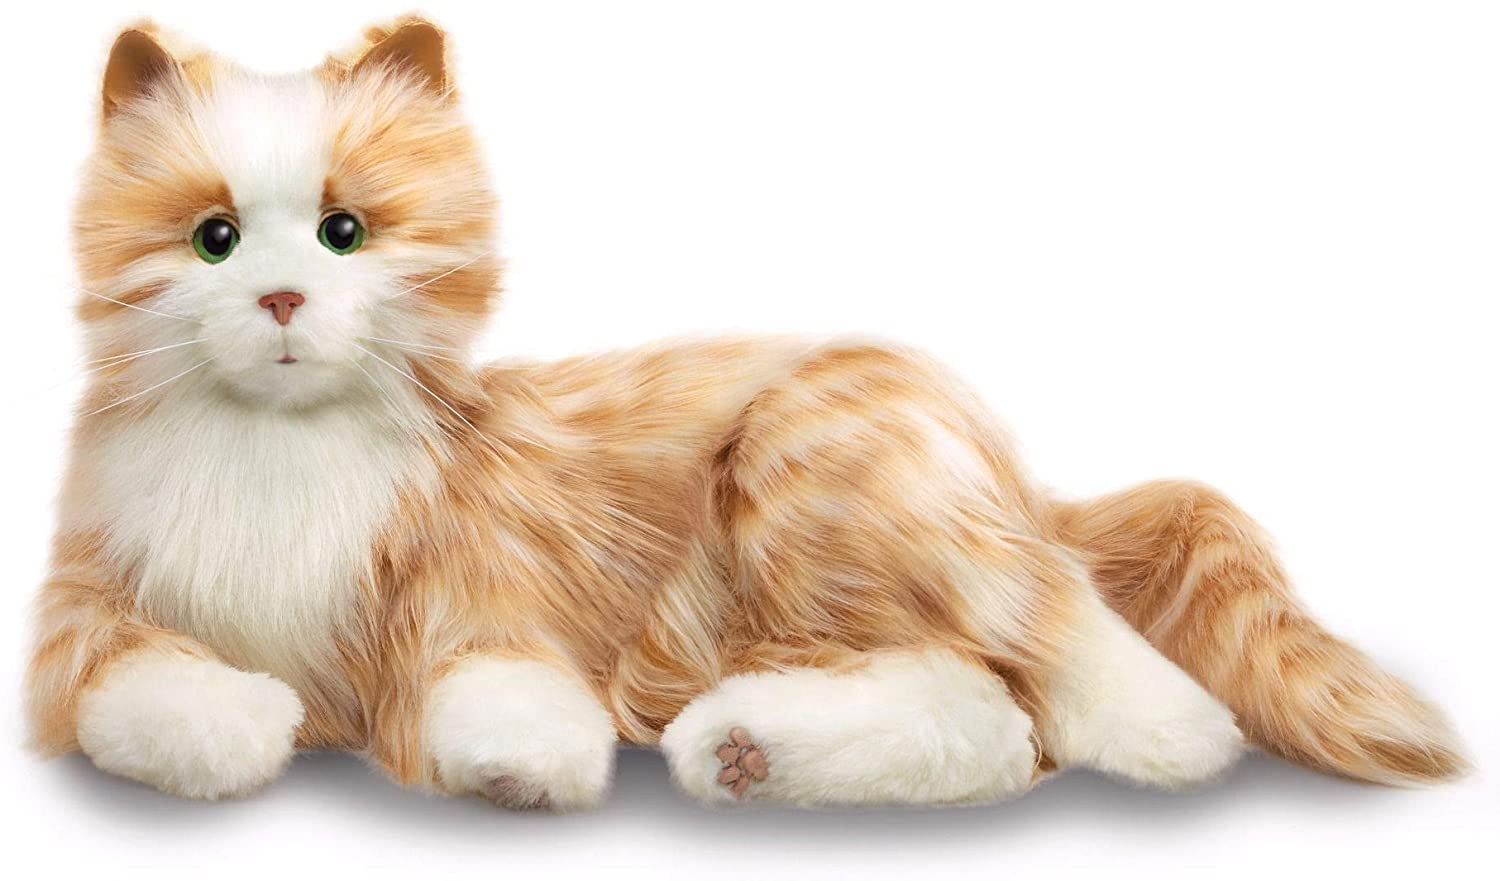 Review of JOY FOR ALL - Orange Tabby Cat - Interactive Companion Pets - Realistic & Lifelike